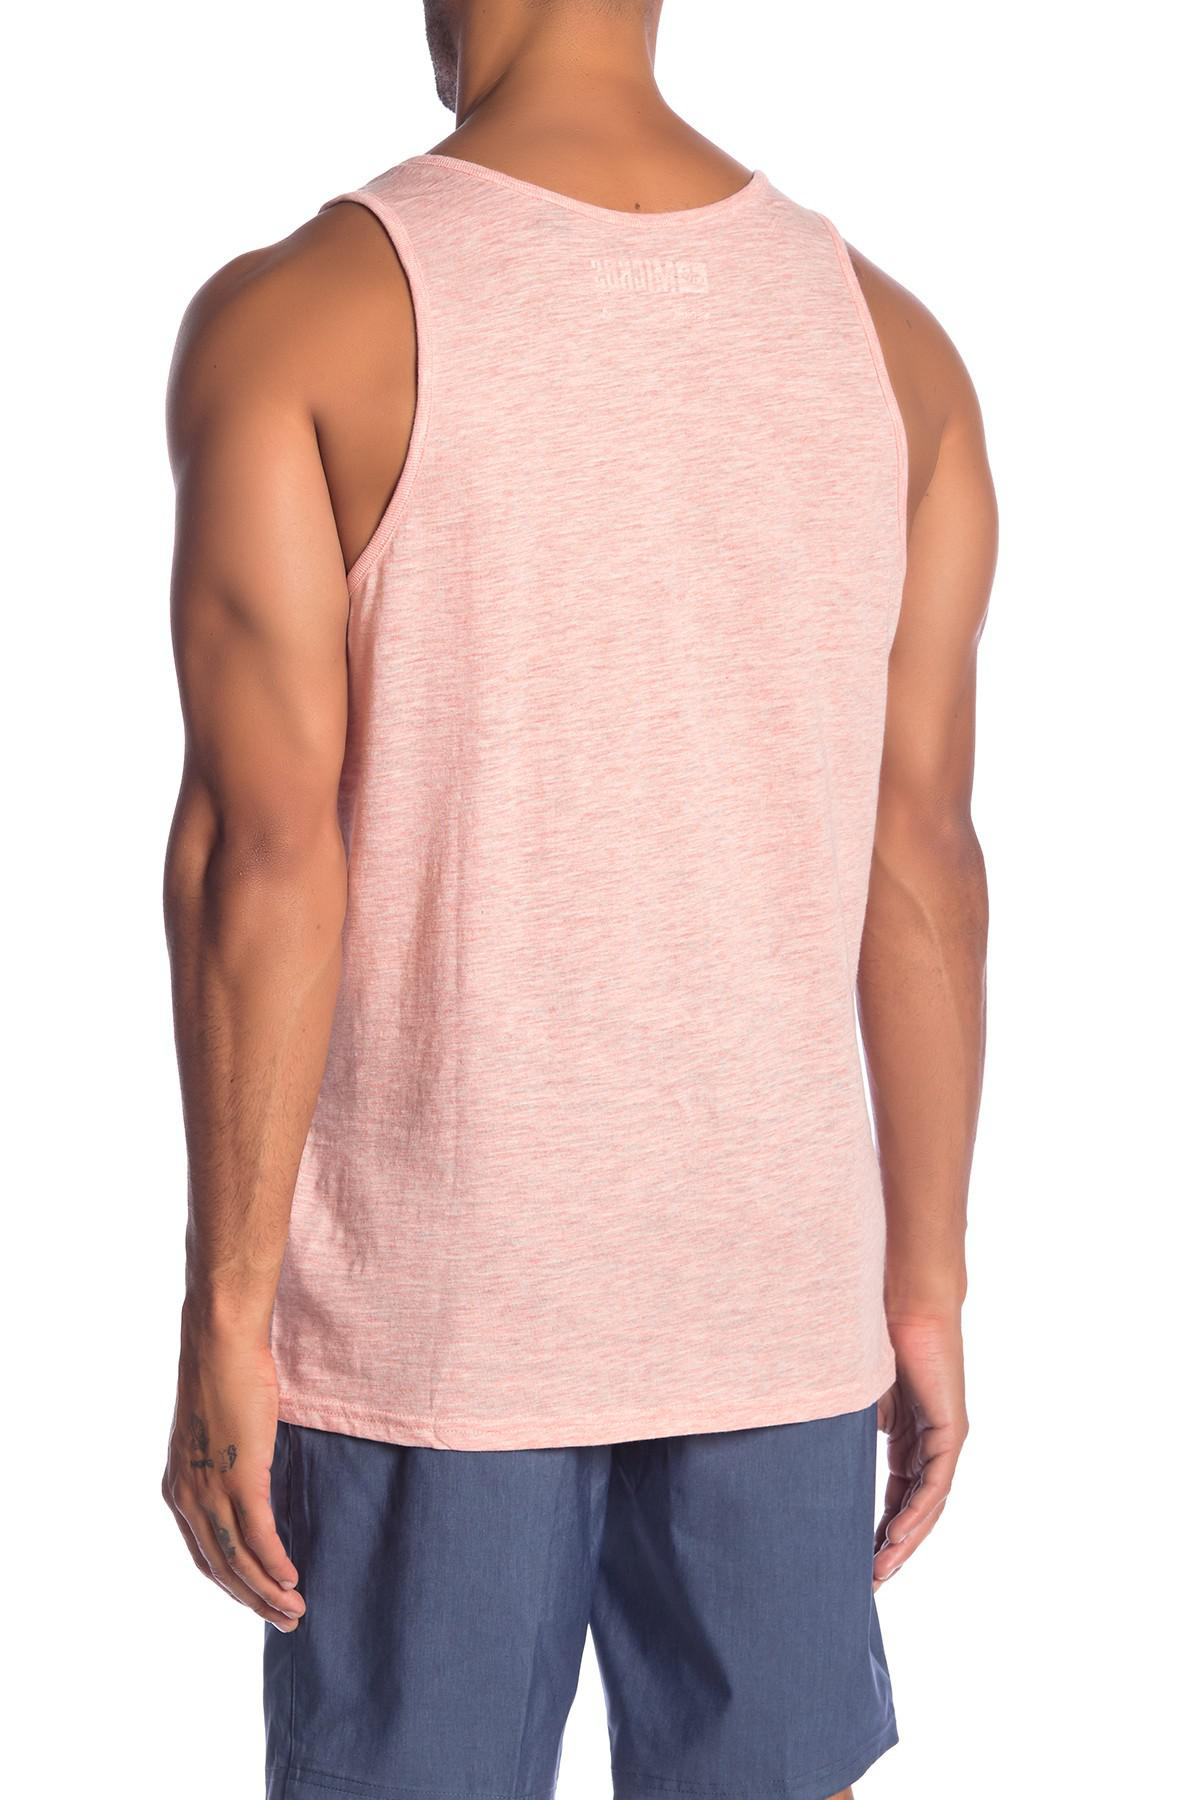 7ae8c4c2d98a9 Lyst - Micros Hoover Graphic Tank Top in Pink for Men